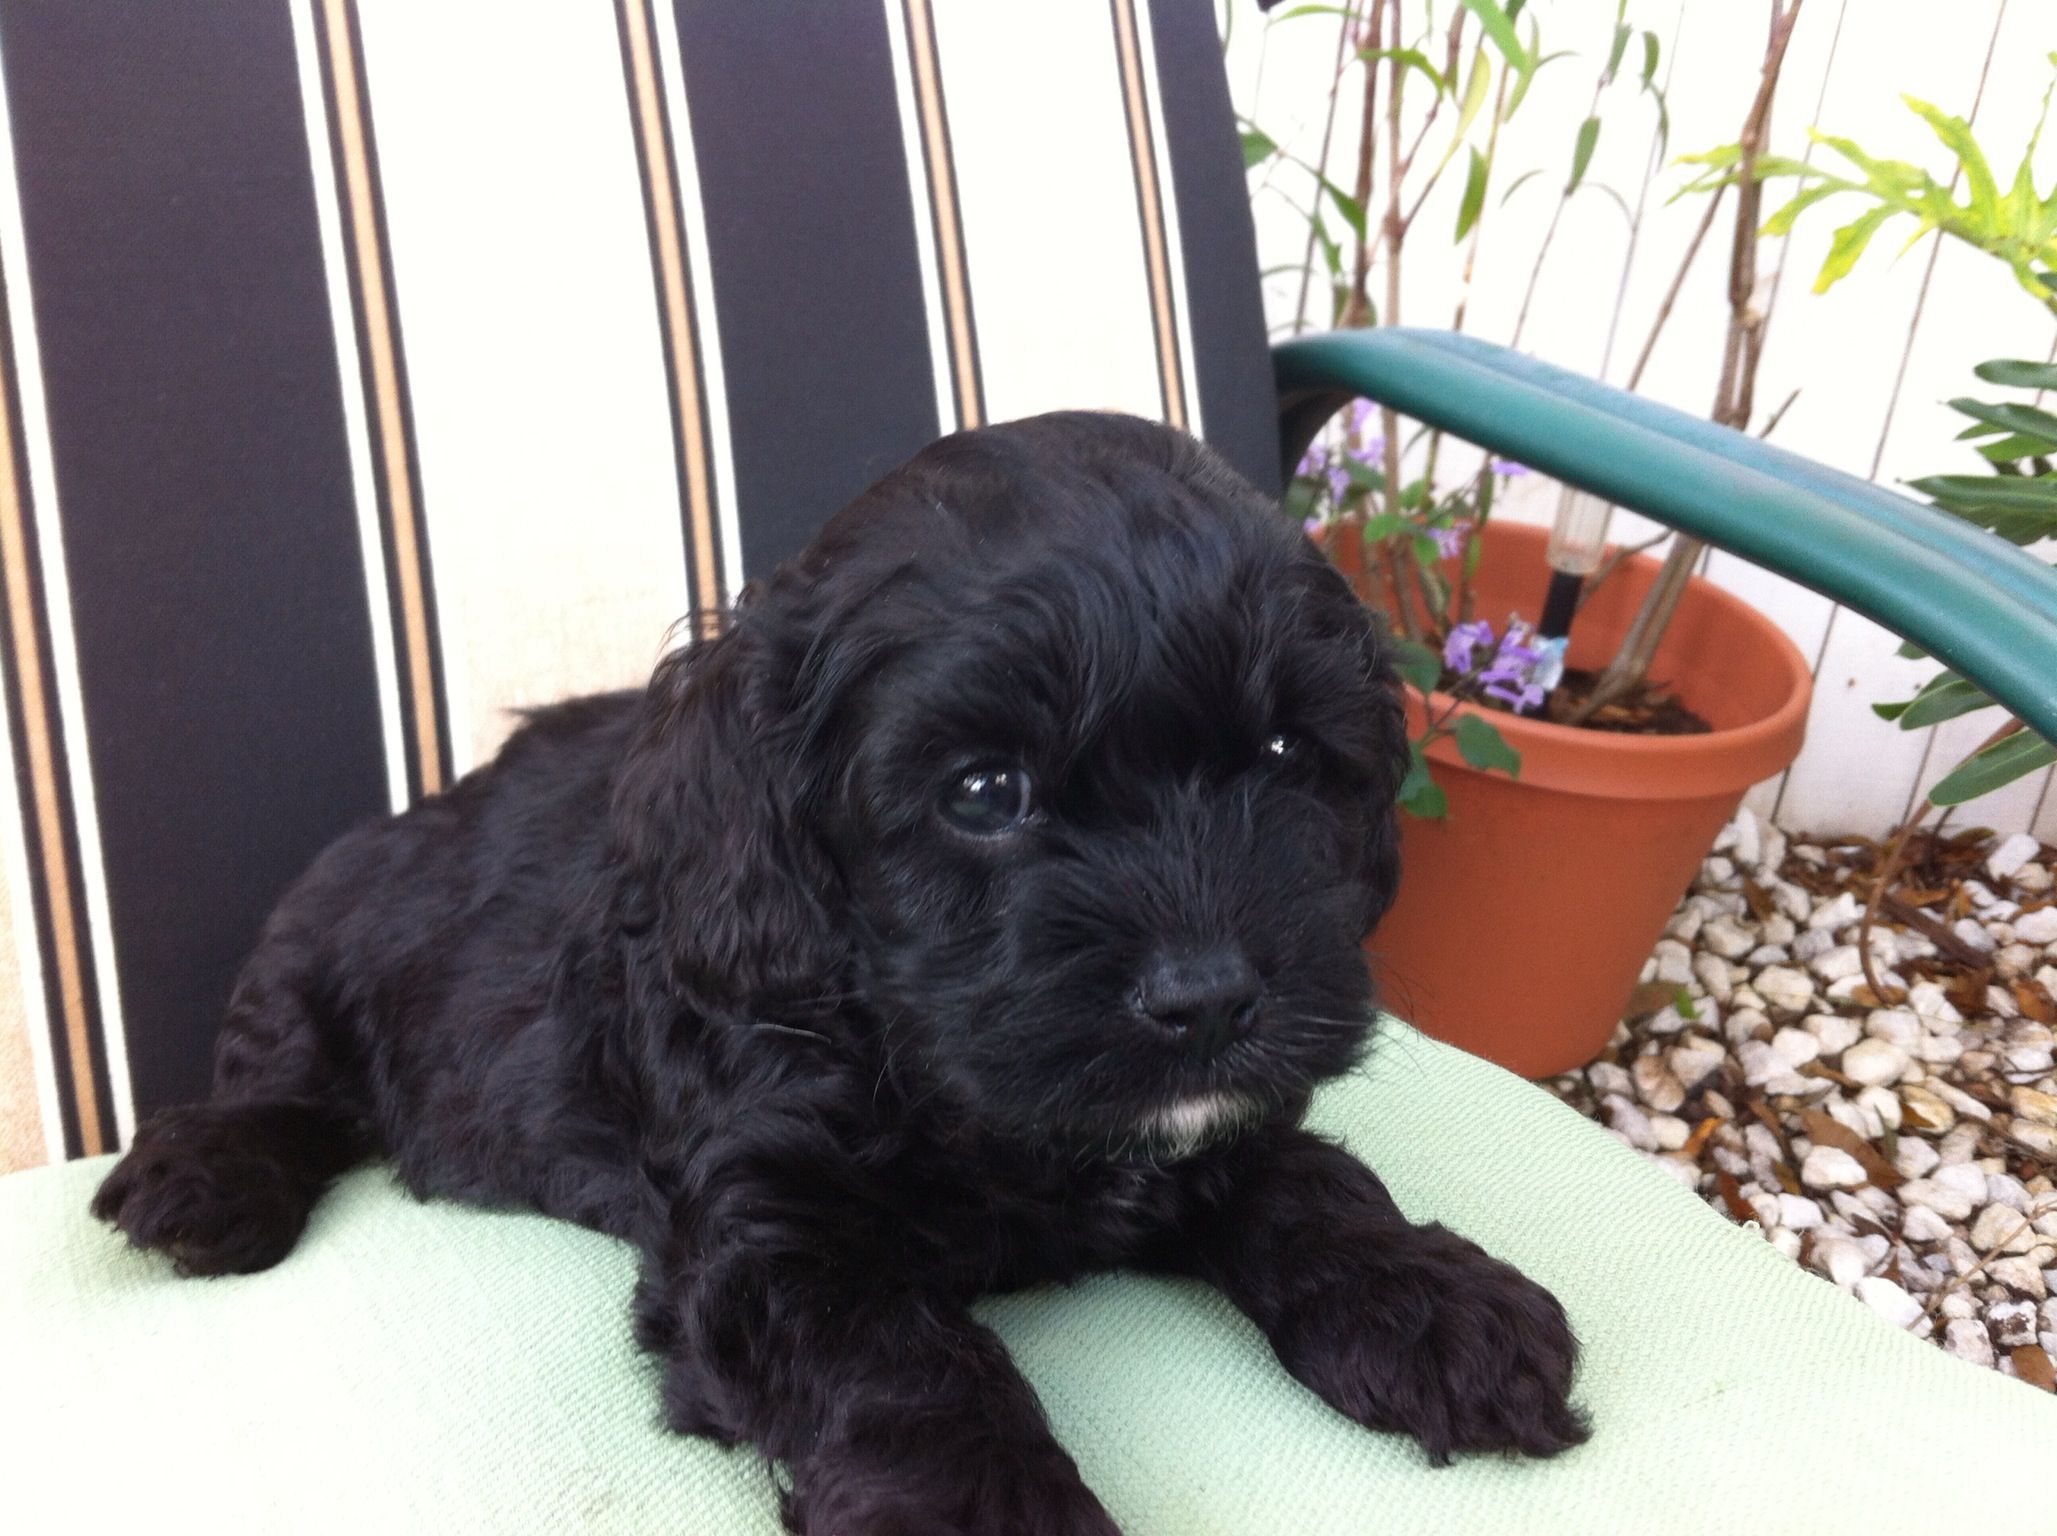 Cockapoo haircuts - A Black Cockapoo From Our Litters